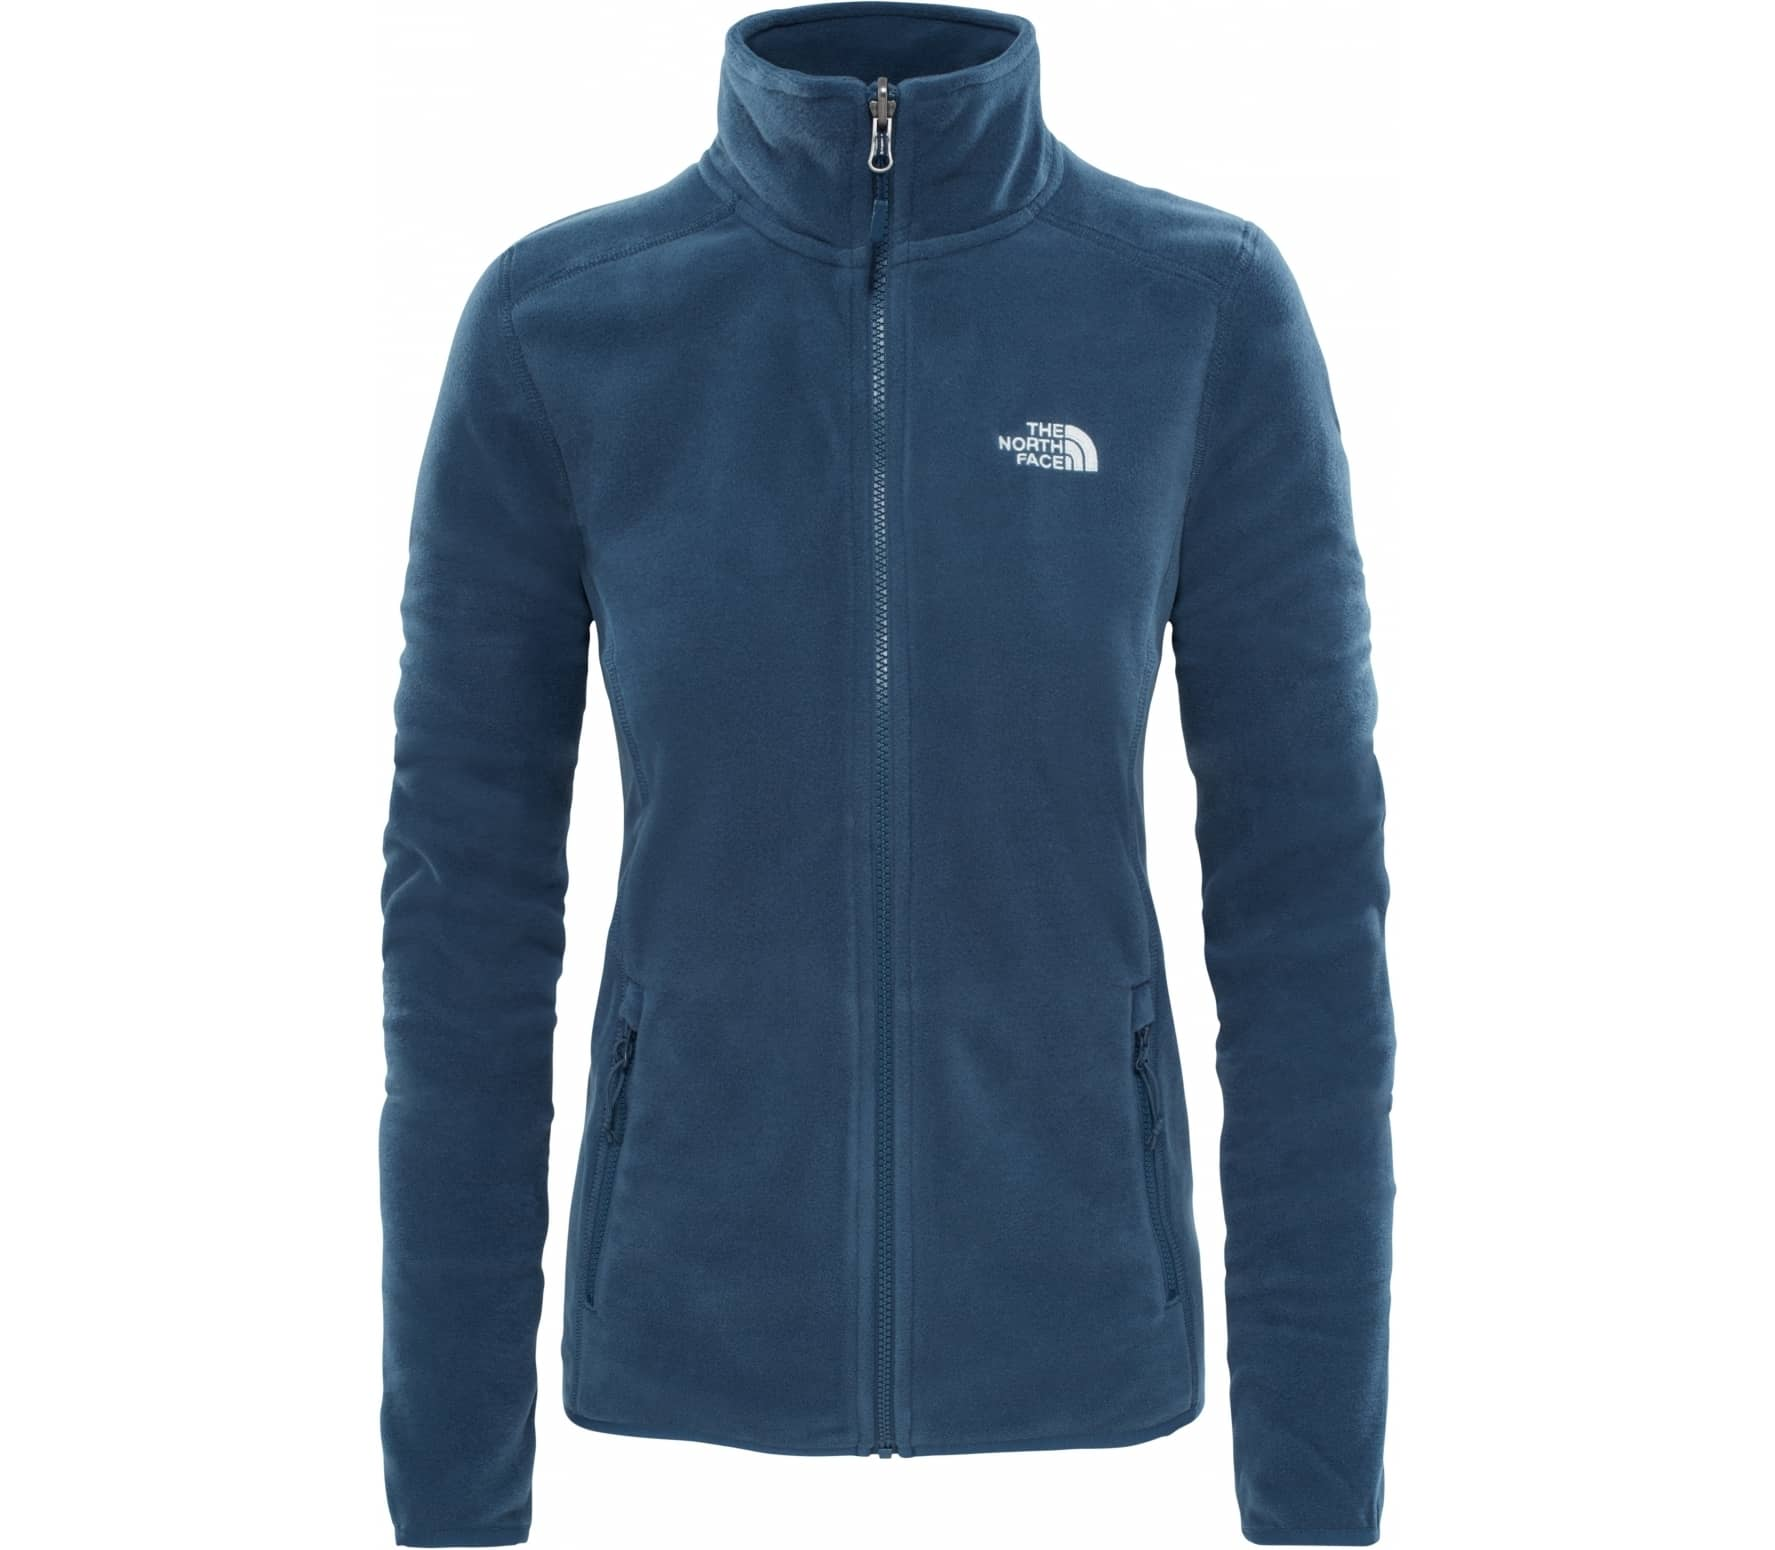 c1a43edf61 The North Face - 100 Glacier Full Zip Donna giacca in pile (blu)